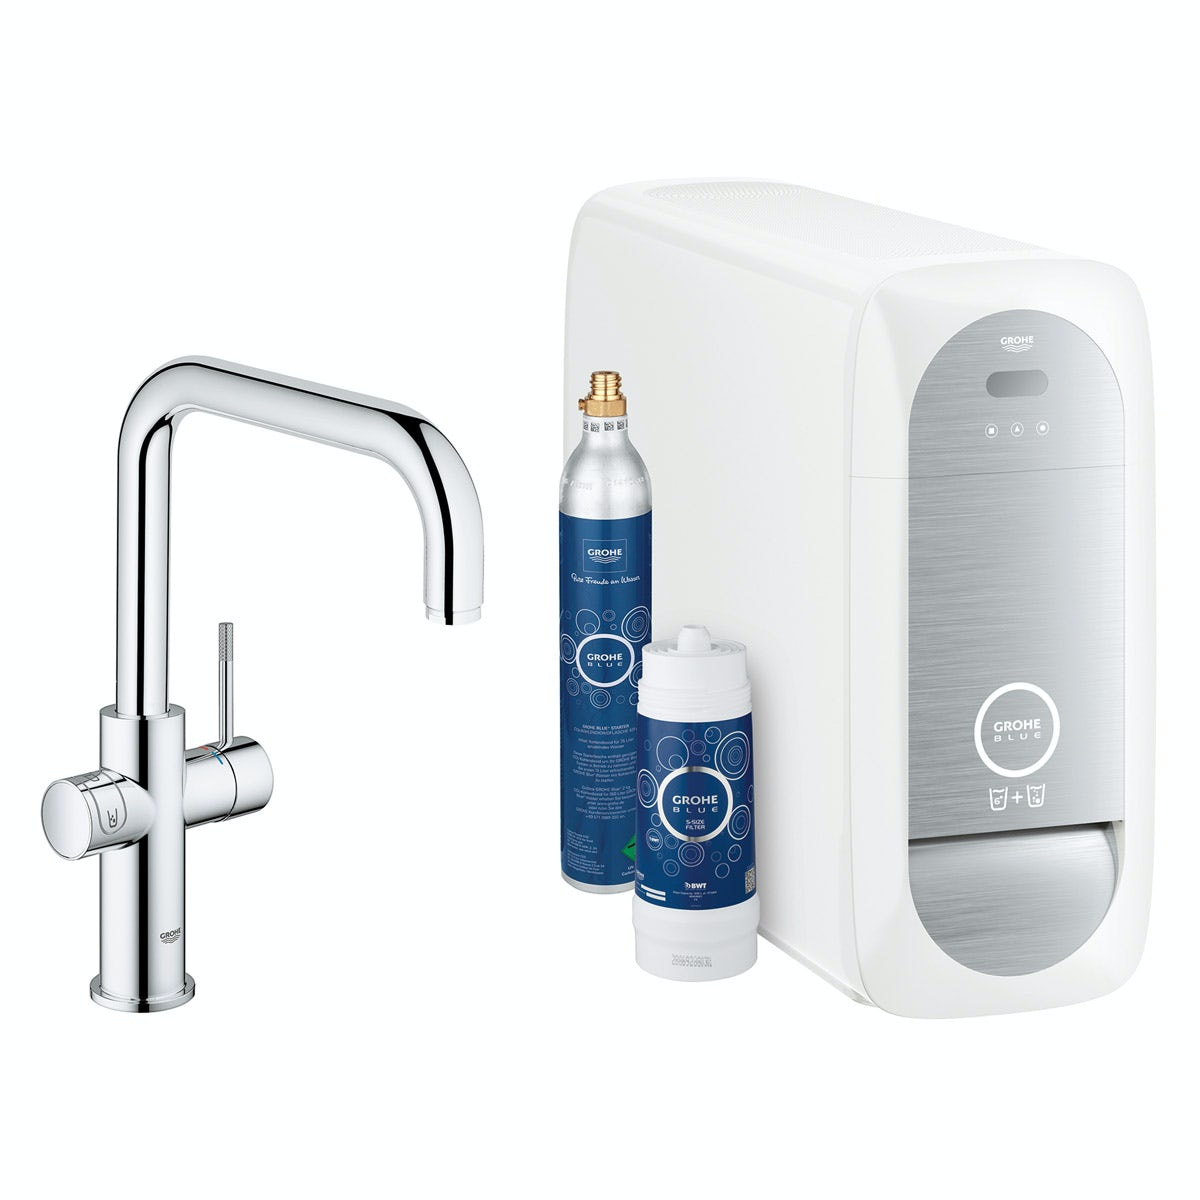 Grohe Blue Home U spout kitchen tap